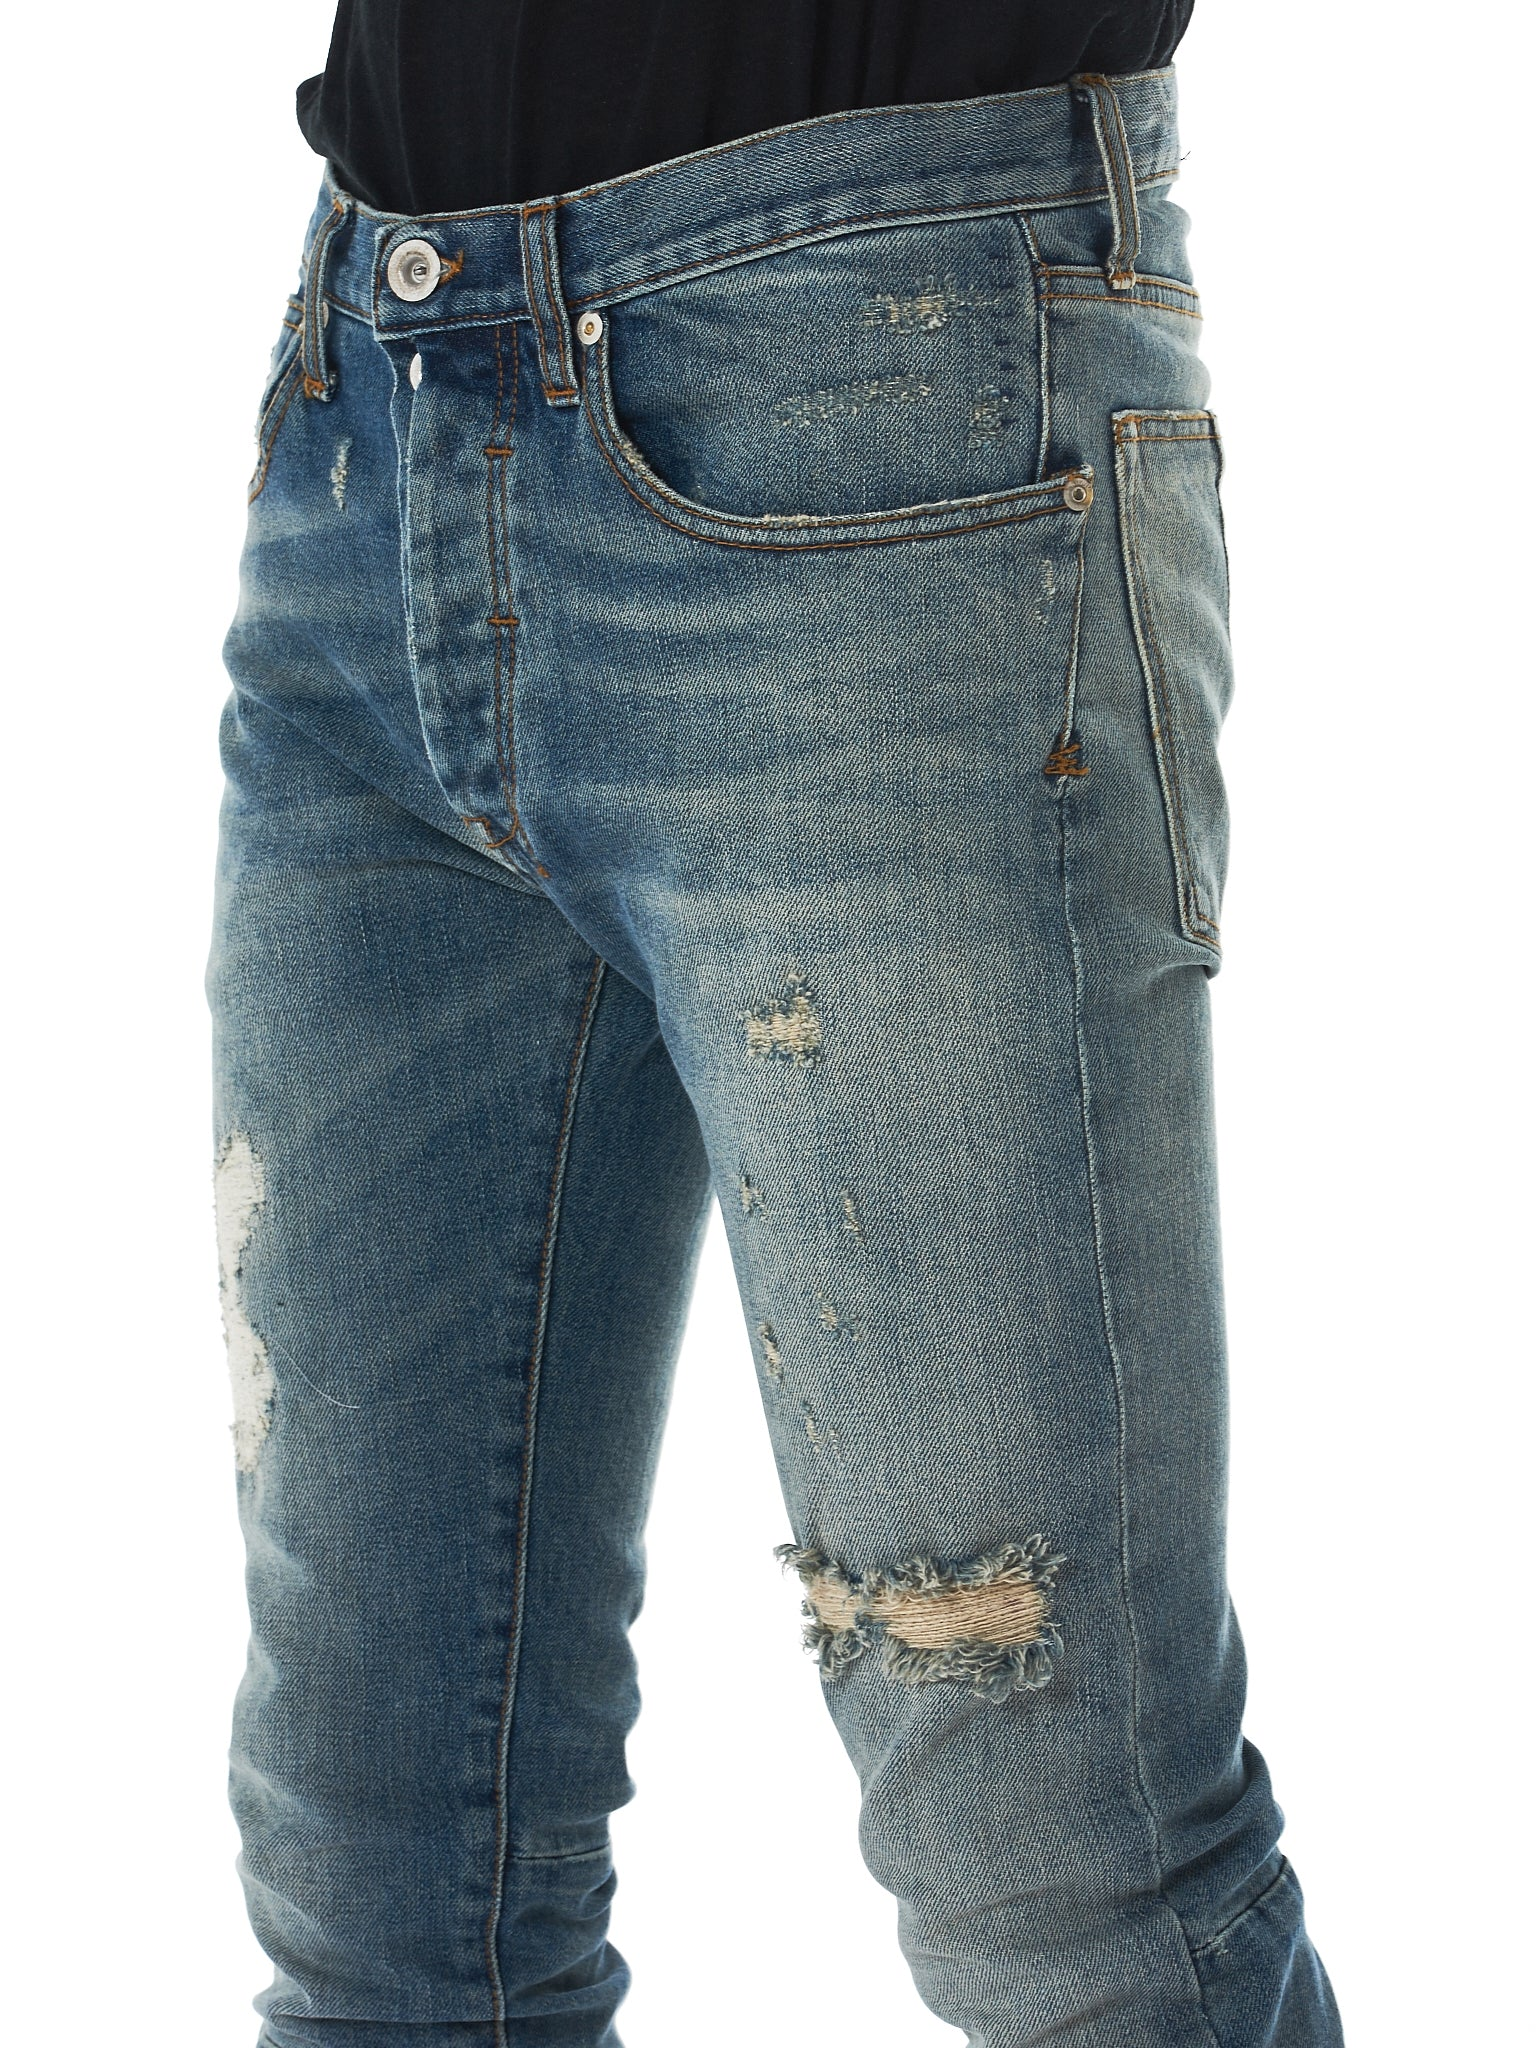 Unravel Distressed Jeans - Hlorenzo Detail 3